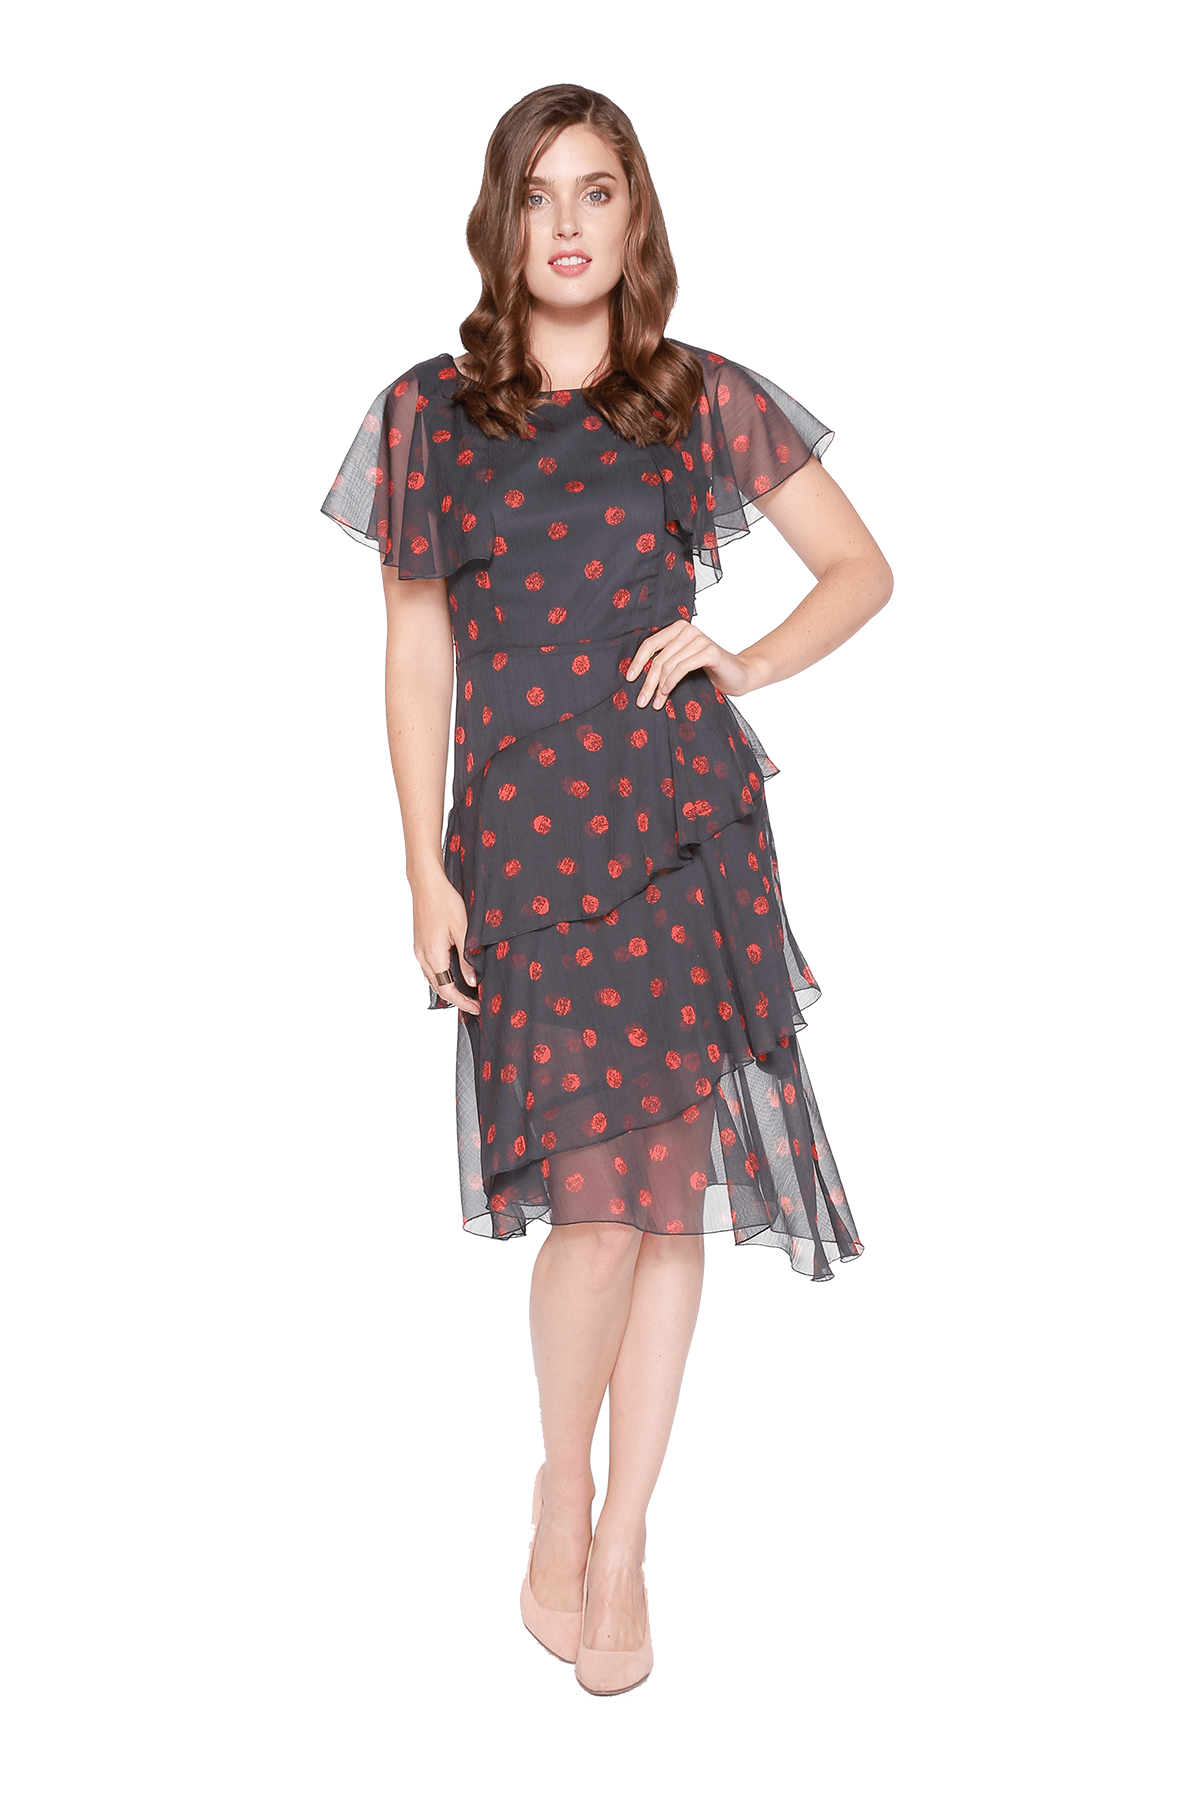 Eva Franco Dress Paula Dress - Chester Dot